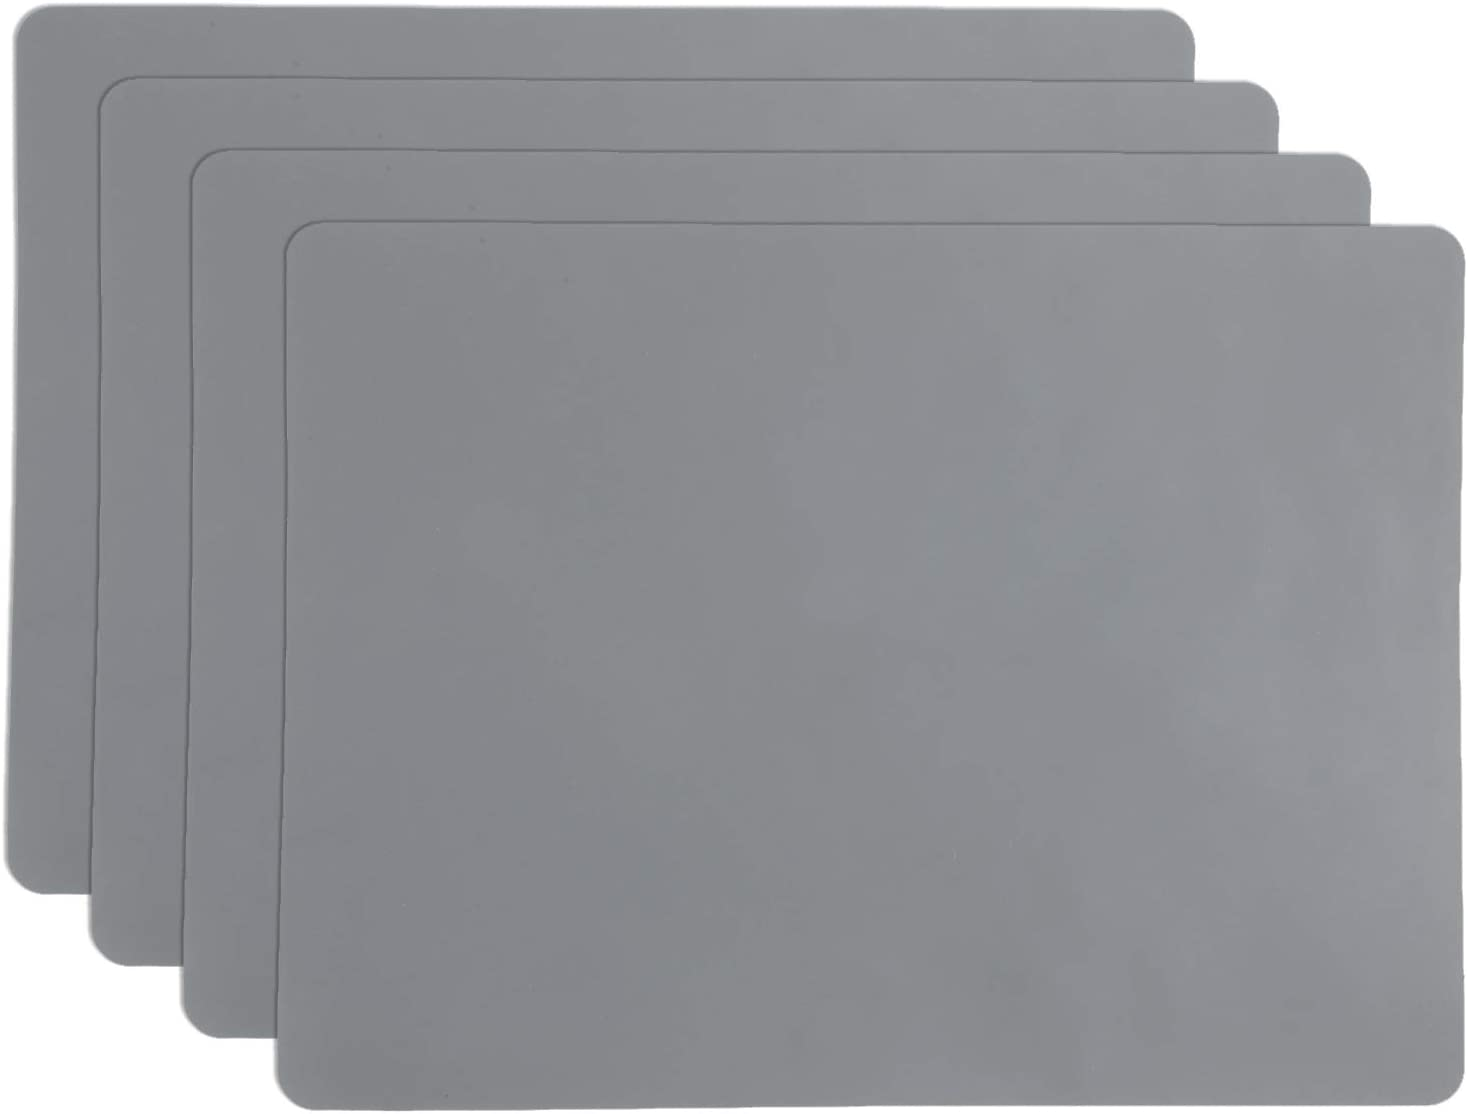 SHACOS Silicone Placemats Set of 4 Heat Resistant Waterproof Table Mats 16x12 inch Non-Slip Place Mats Easy Clean (Dark Gray)